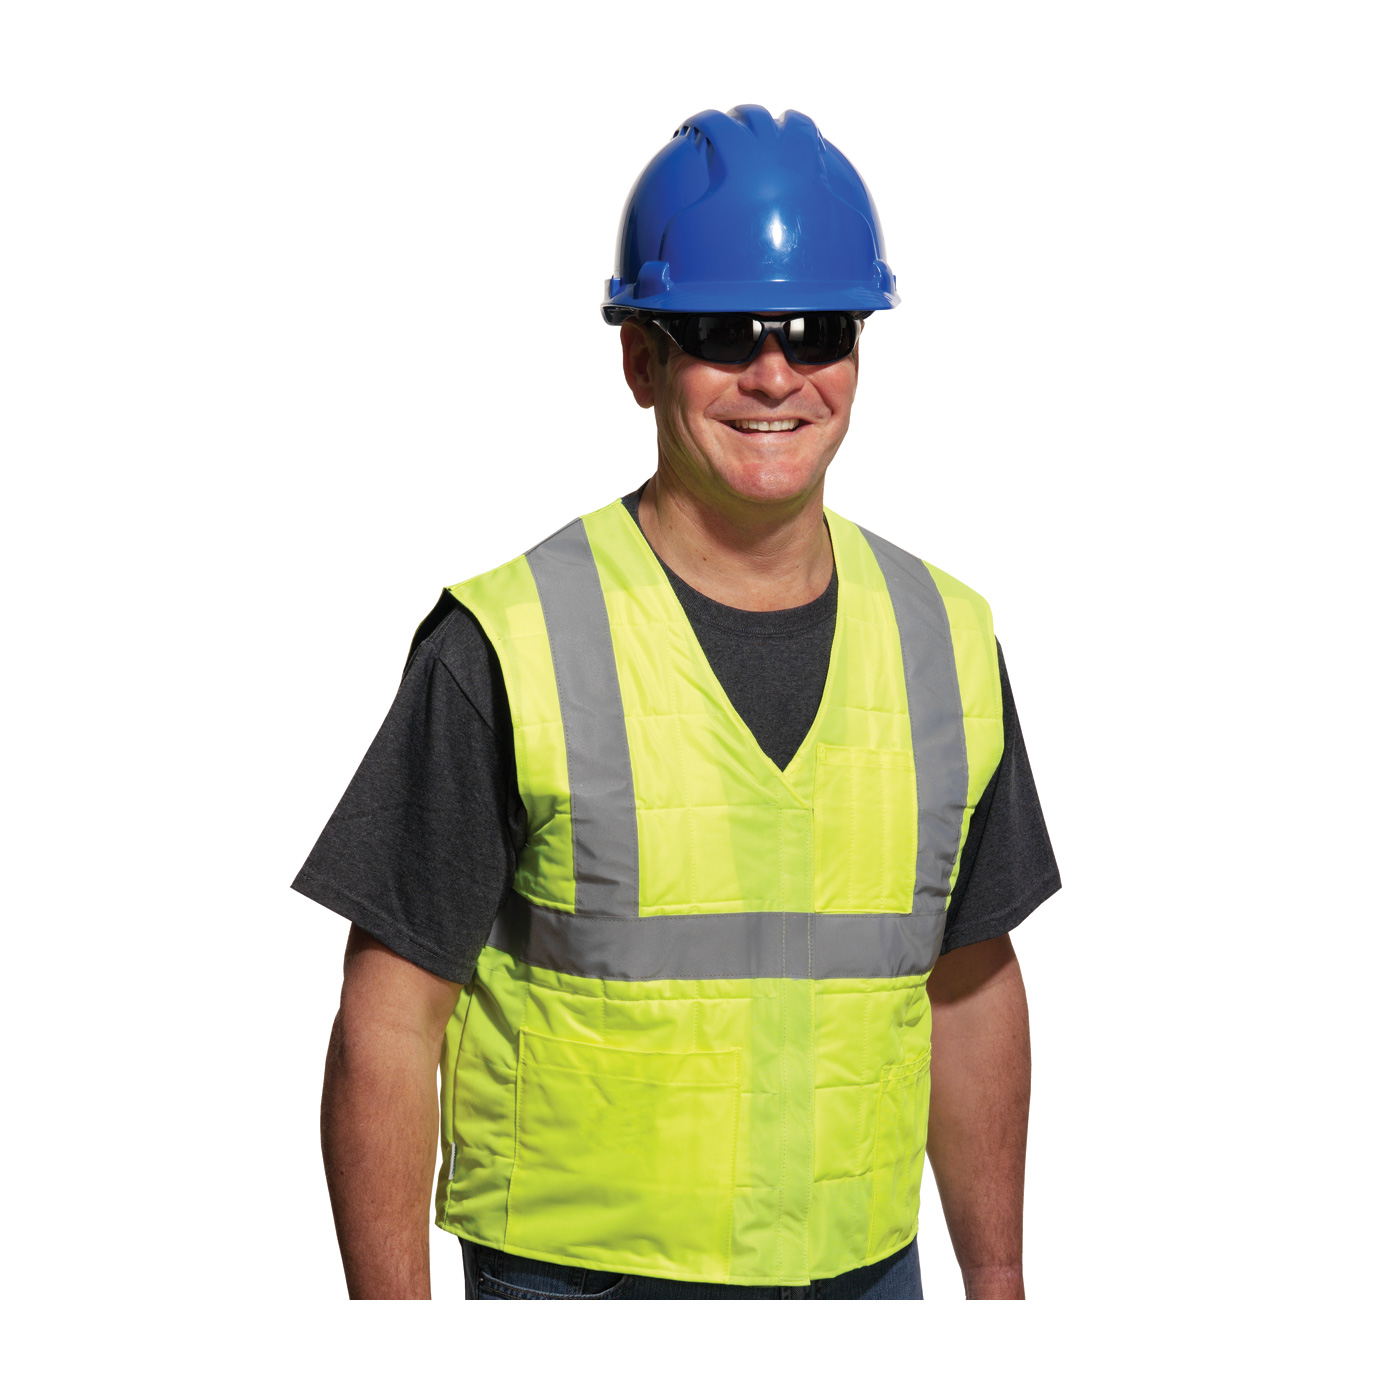 EZ-COOL Flash High Visibility Cooling Vest, 390EZ202 PIP EZ-Cool® Flash Hi-Vis Cooling Safety Vest